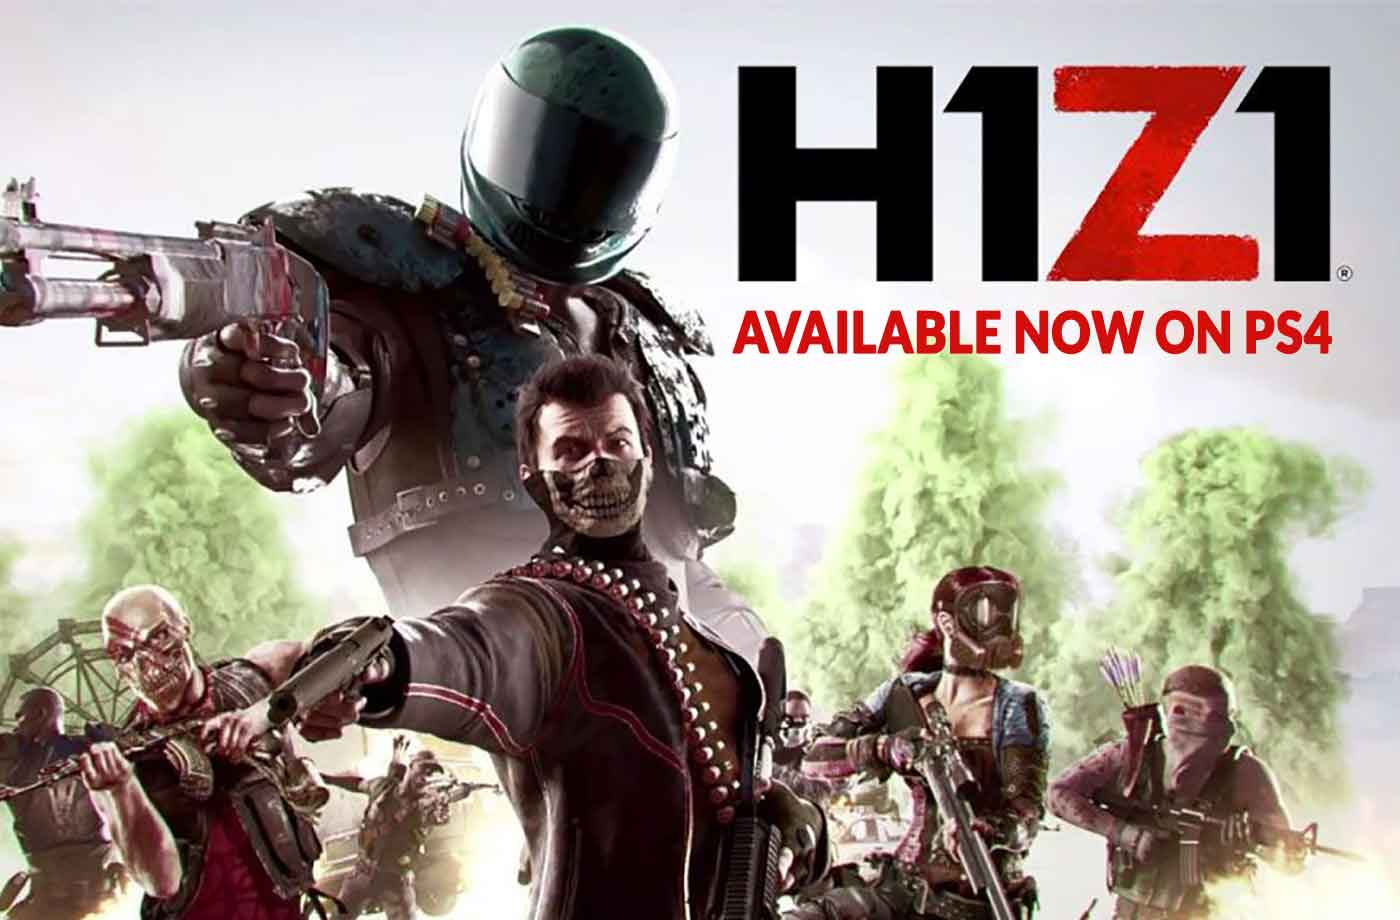 Tired Of Fortnite Heres How To Download H1Z1 On PS4